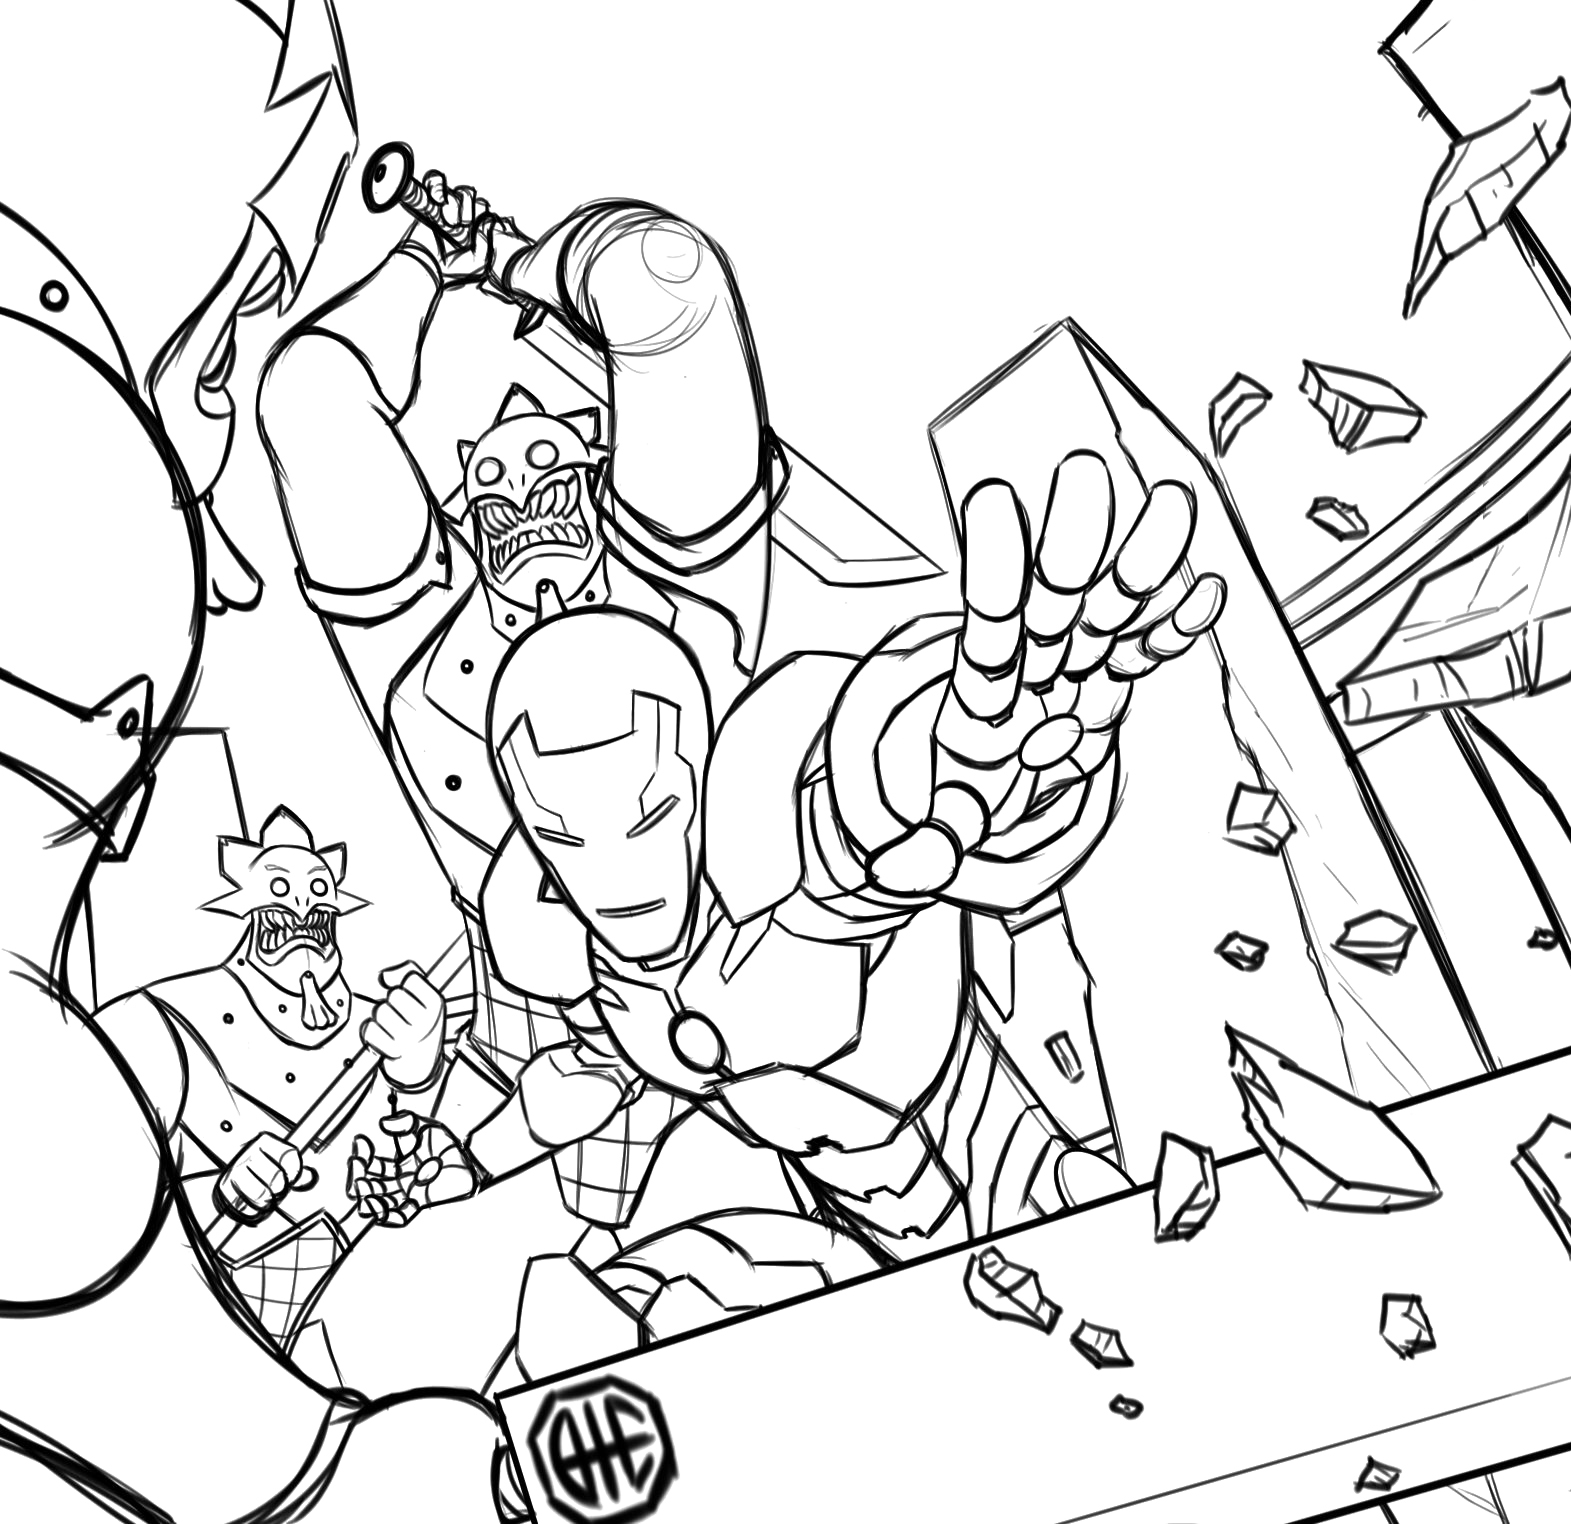 avengers for coloring avengers to color for kids avengers kids coloring pages avengers coloring for